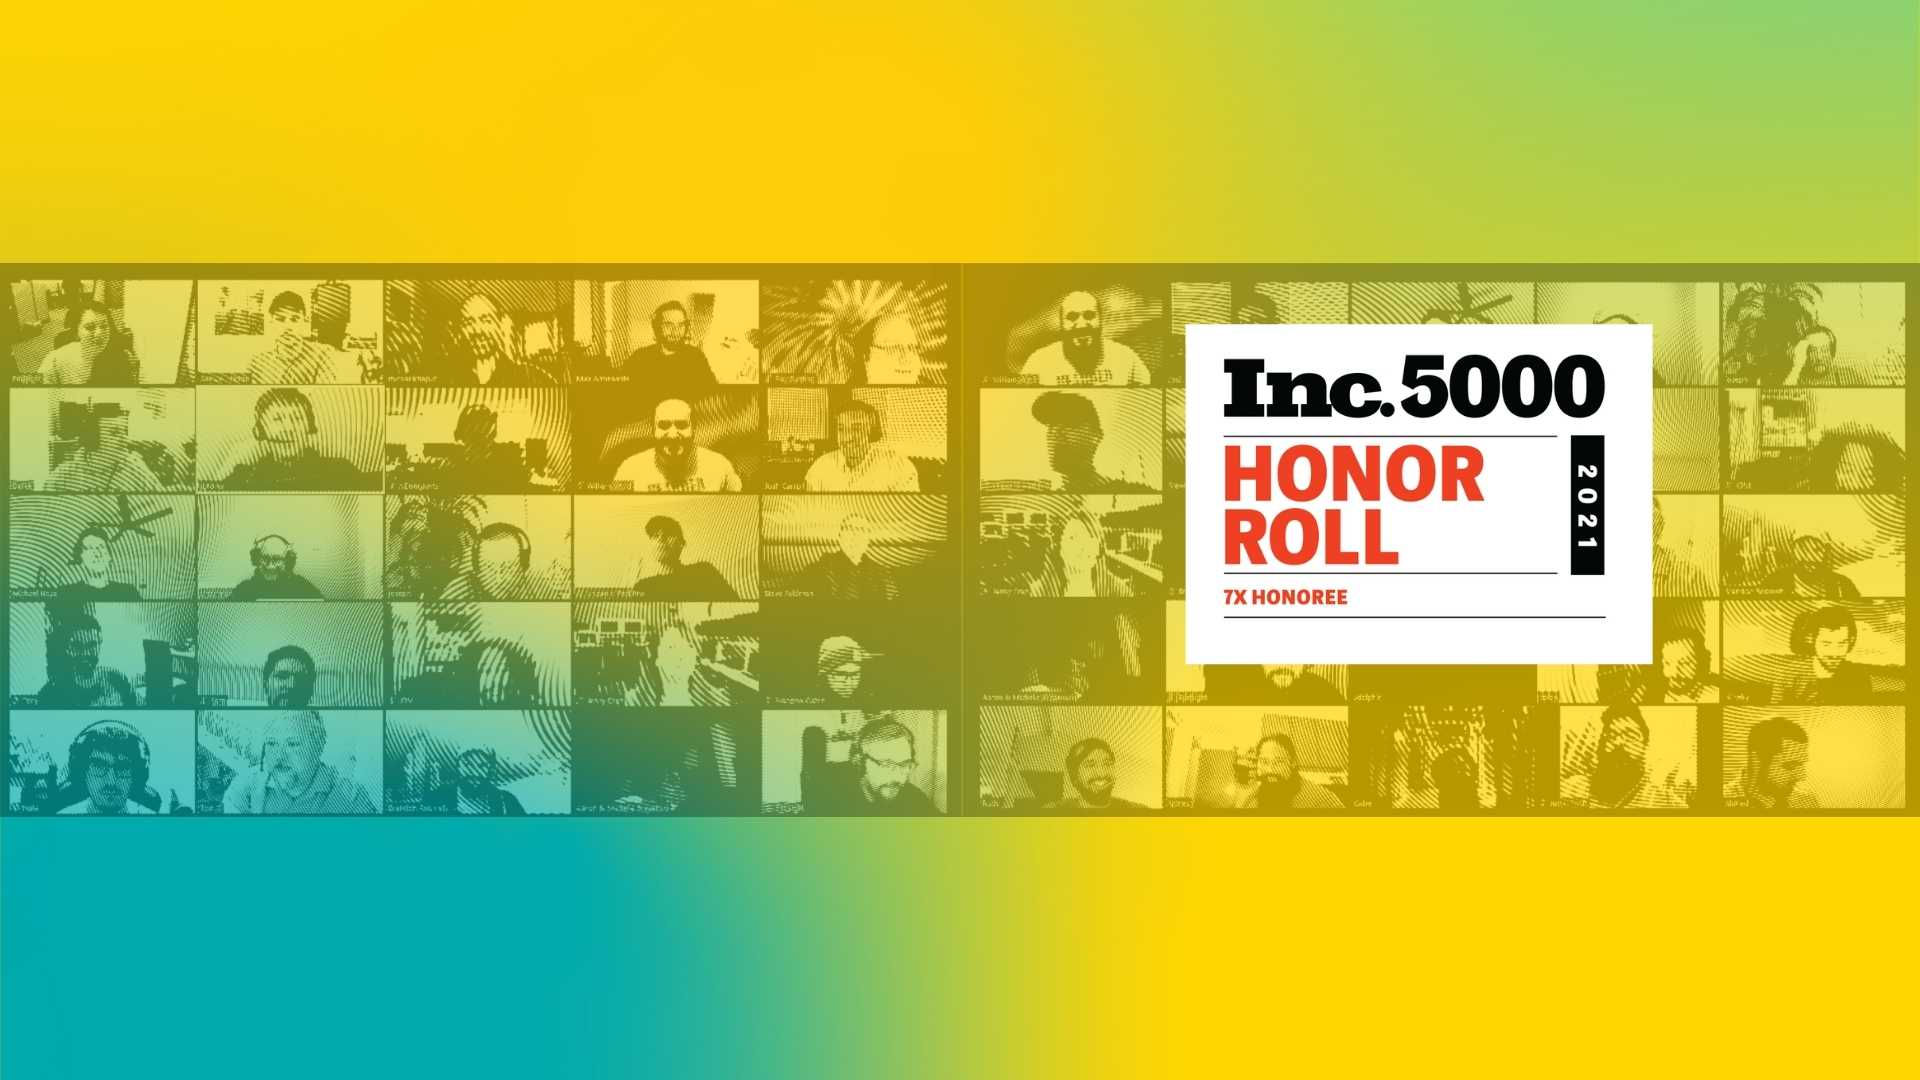 Endsight Awarded 7x Honoree on Inc 5000